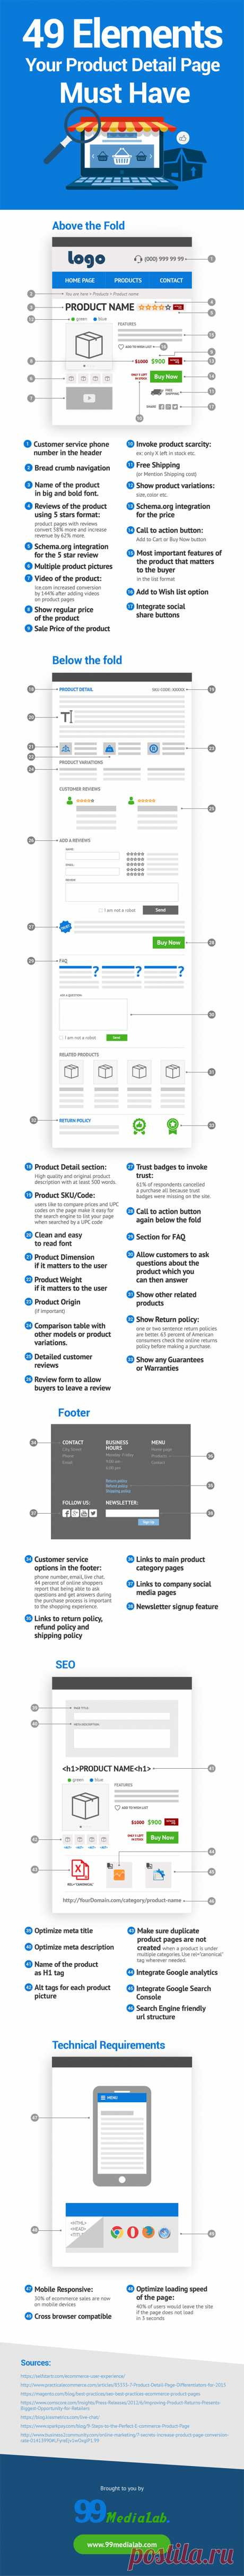 49 Essential Design Elements Your Ecommerce Product Pages Should Include - Infographic